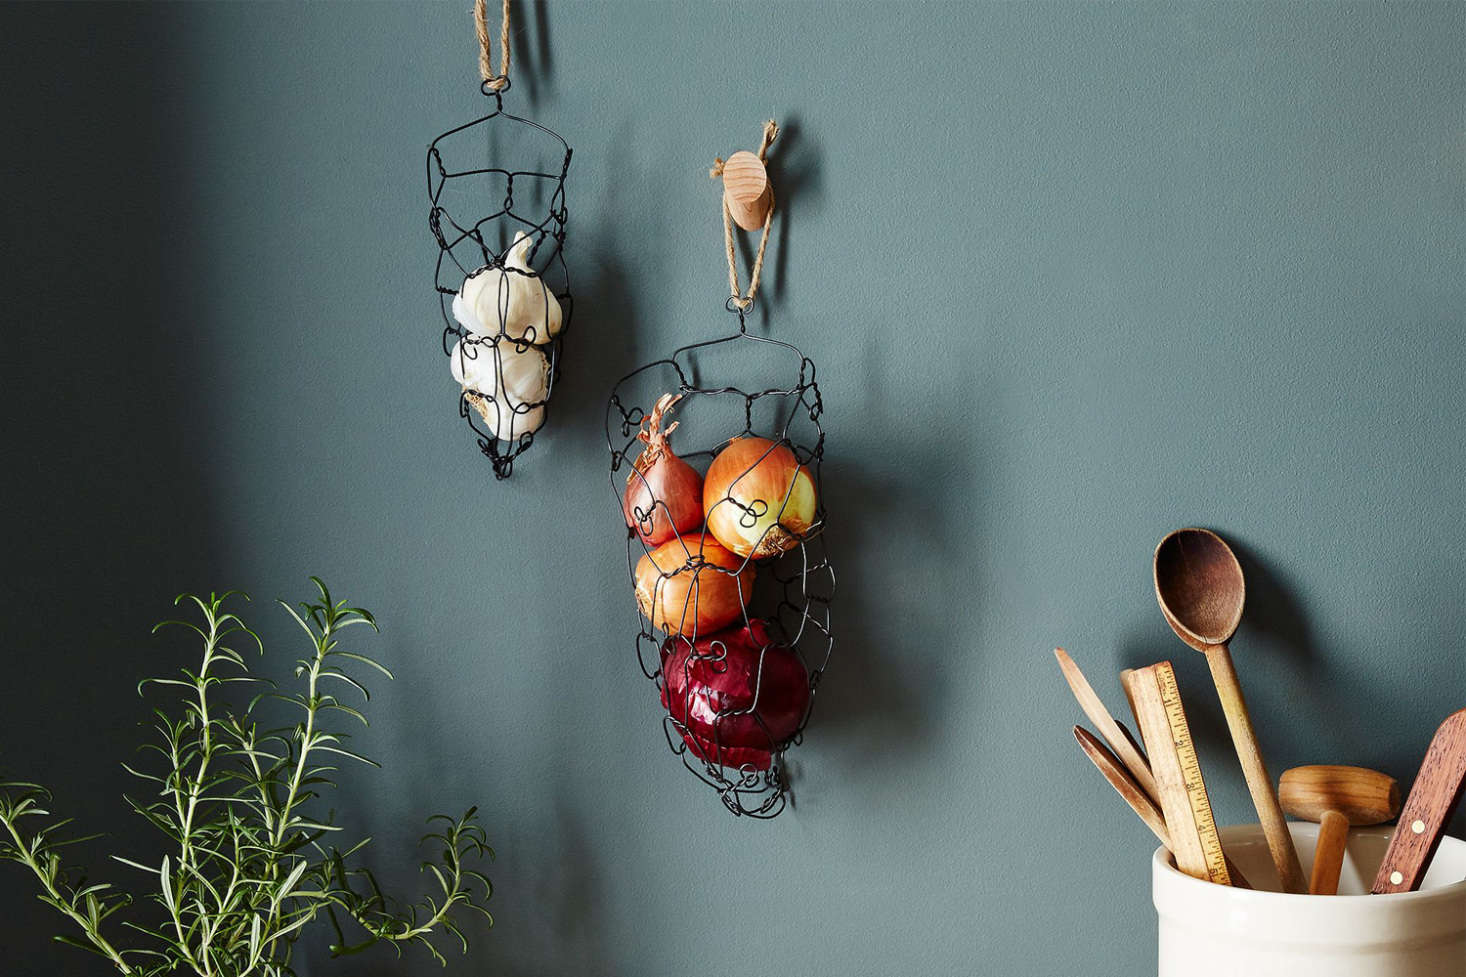 The Charest Studios Wall-Mounted Onion Garlic Basket is made of annealed steel wire and hangs on the wall; $30 to $69 at Food52.